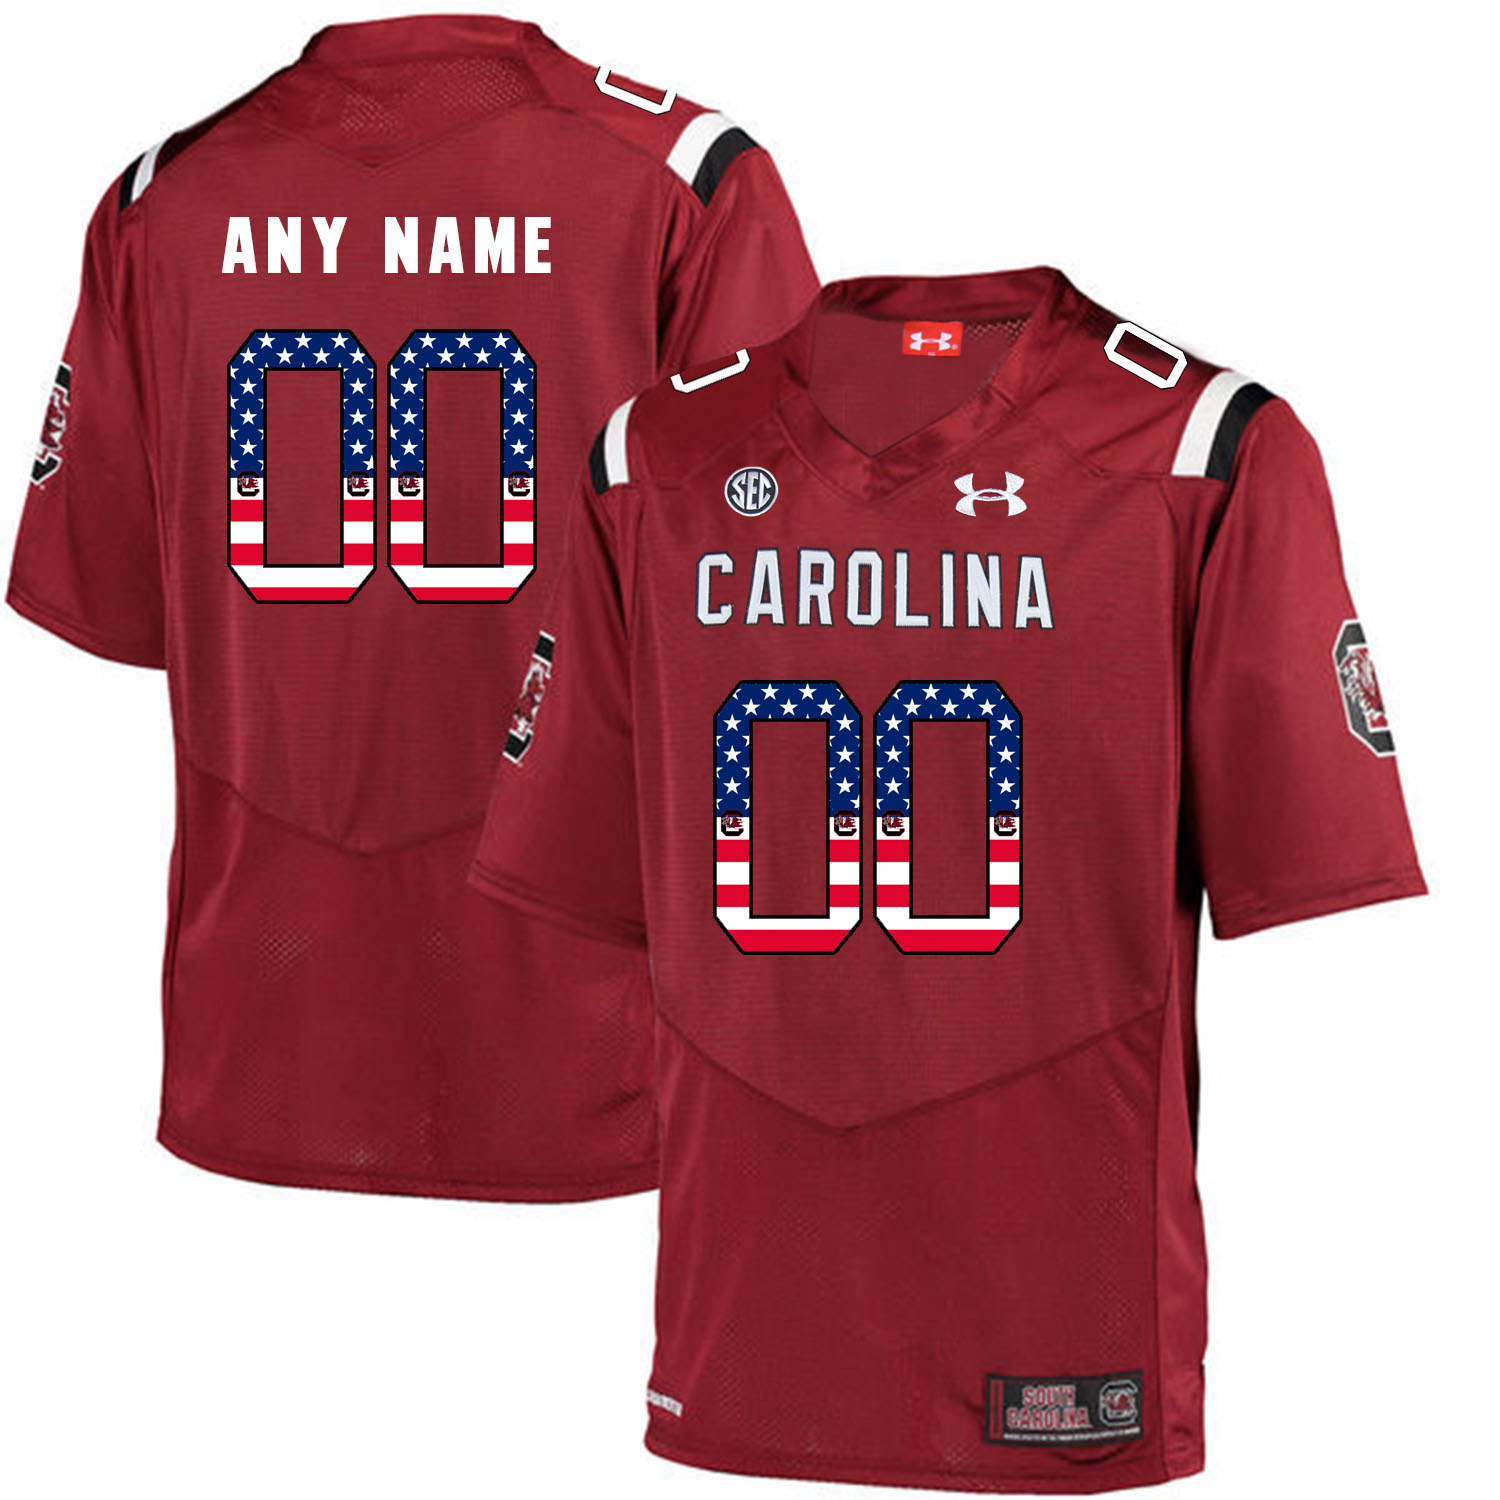 South Carolina Gamecocks Red Customized USA Flag College Football Jersey